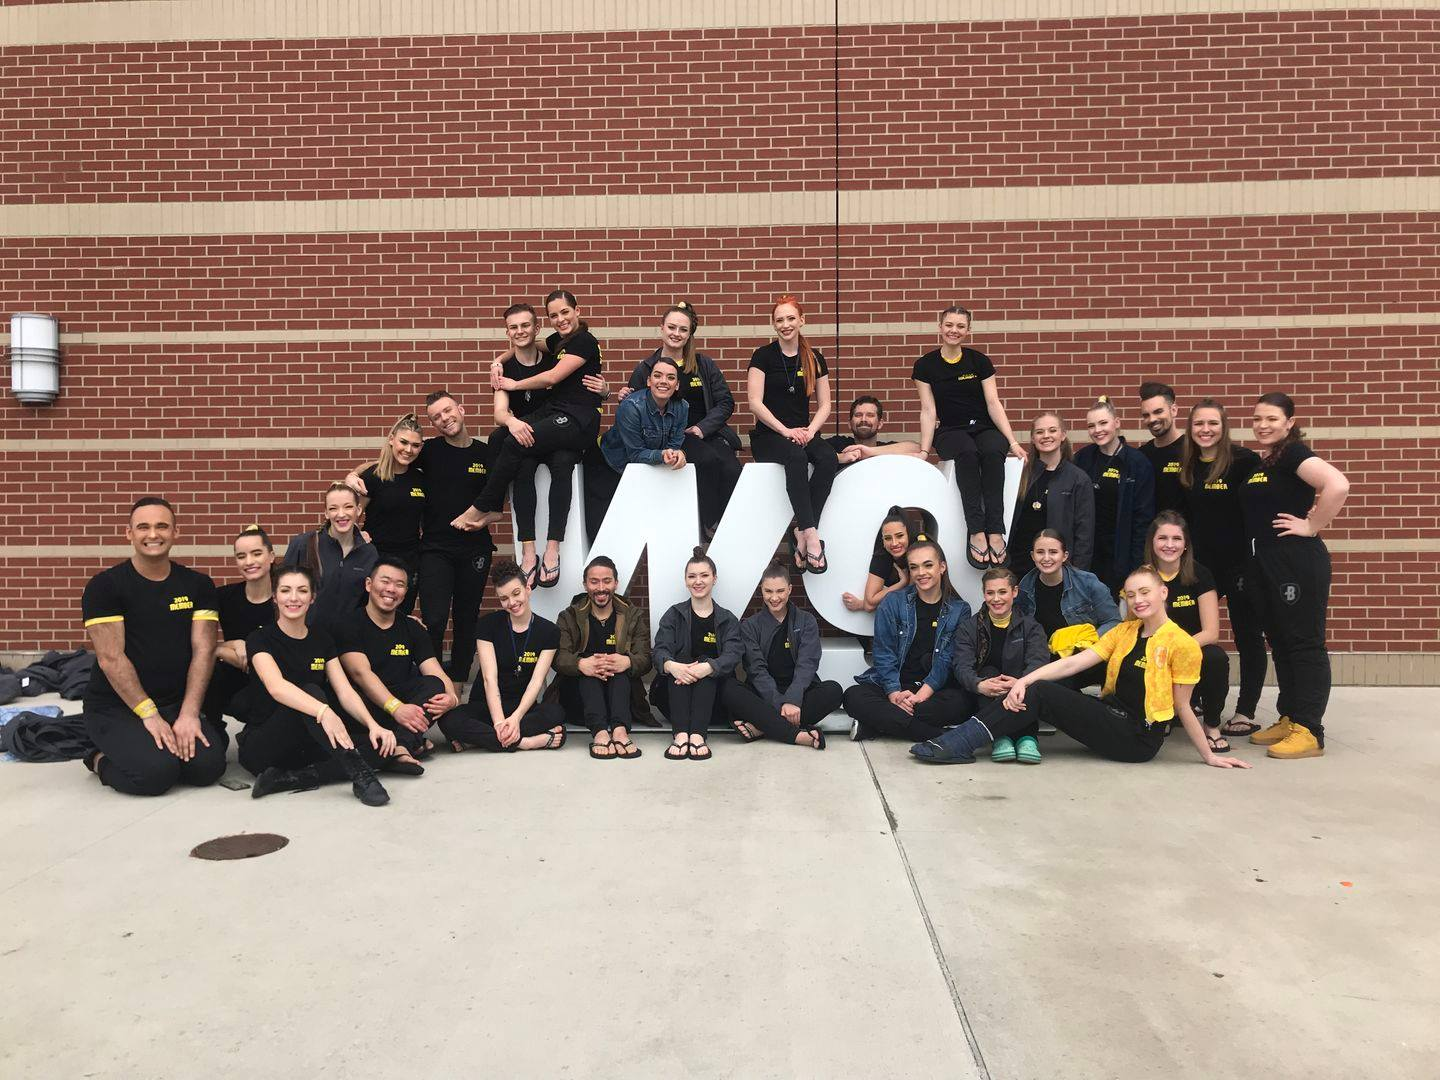 Before going to semis warm-up, performers took a group picture by the WGI sign!